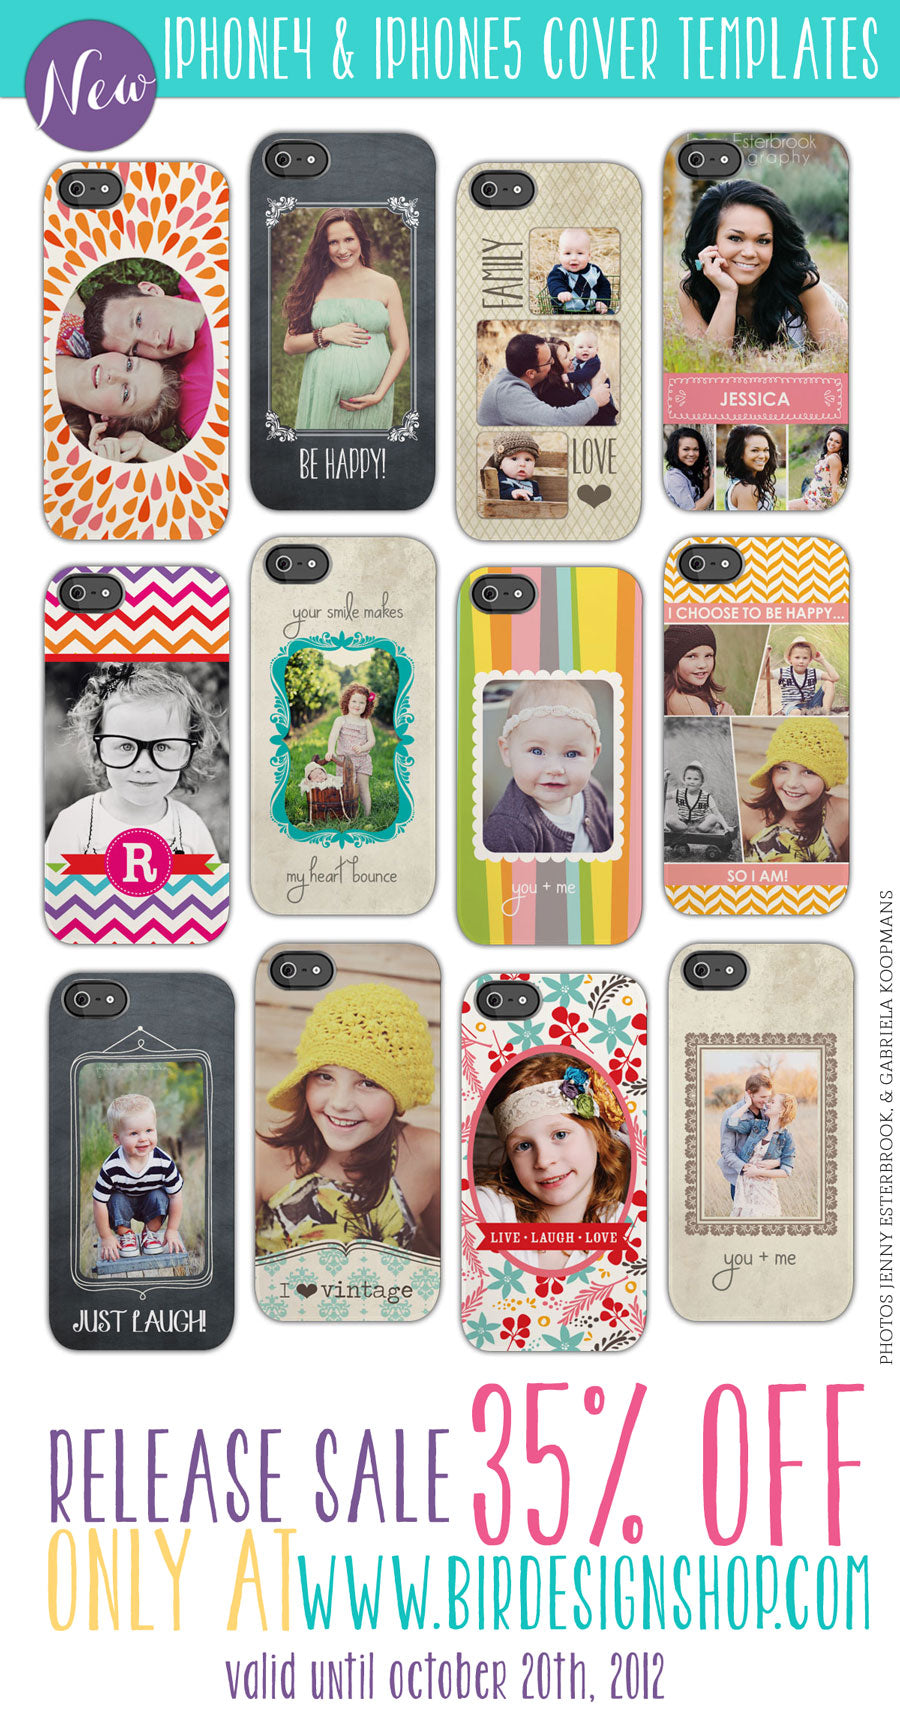 iphone 4 and iphon 5 covers templates photoshop templates for photographers